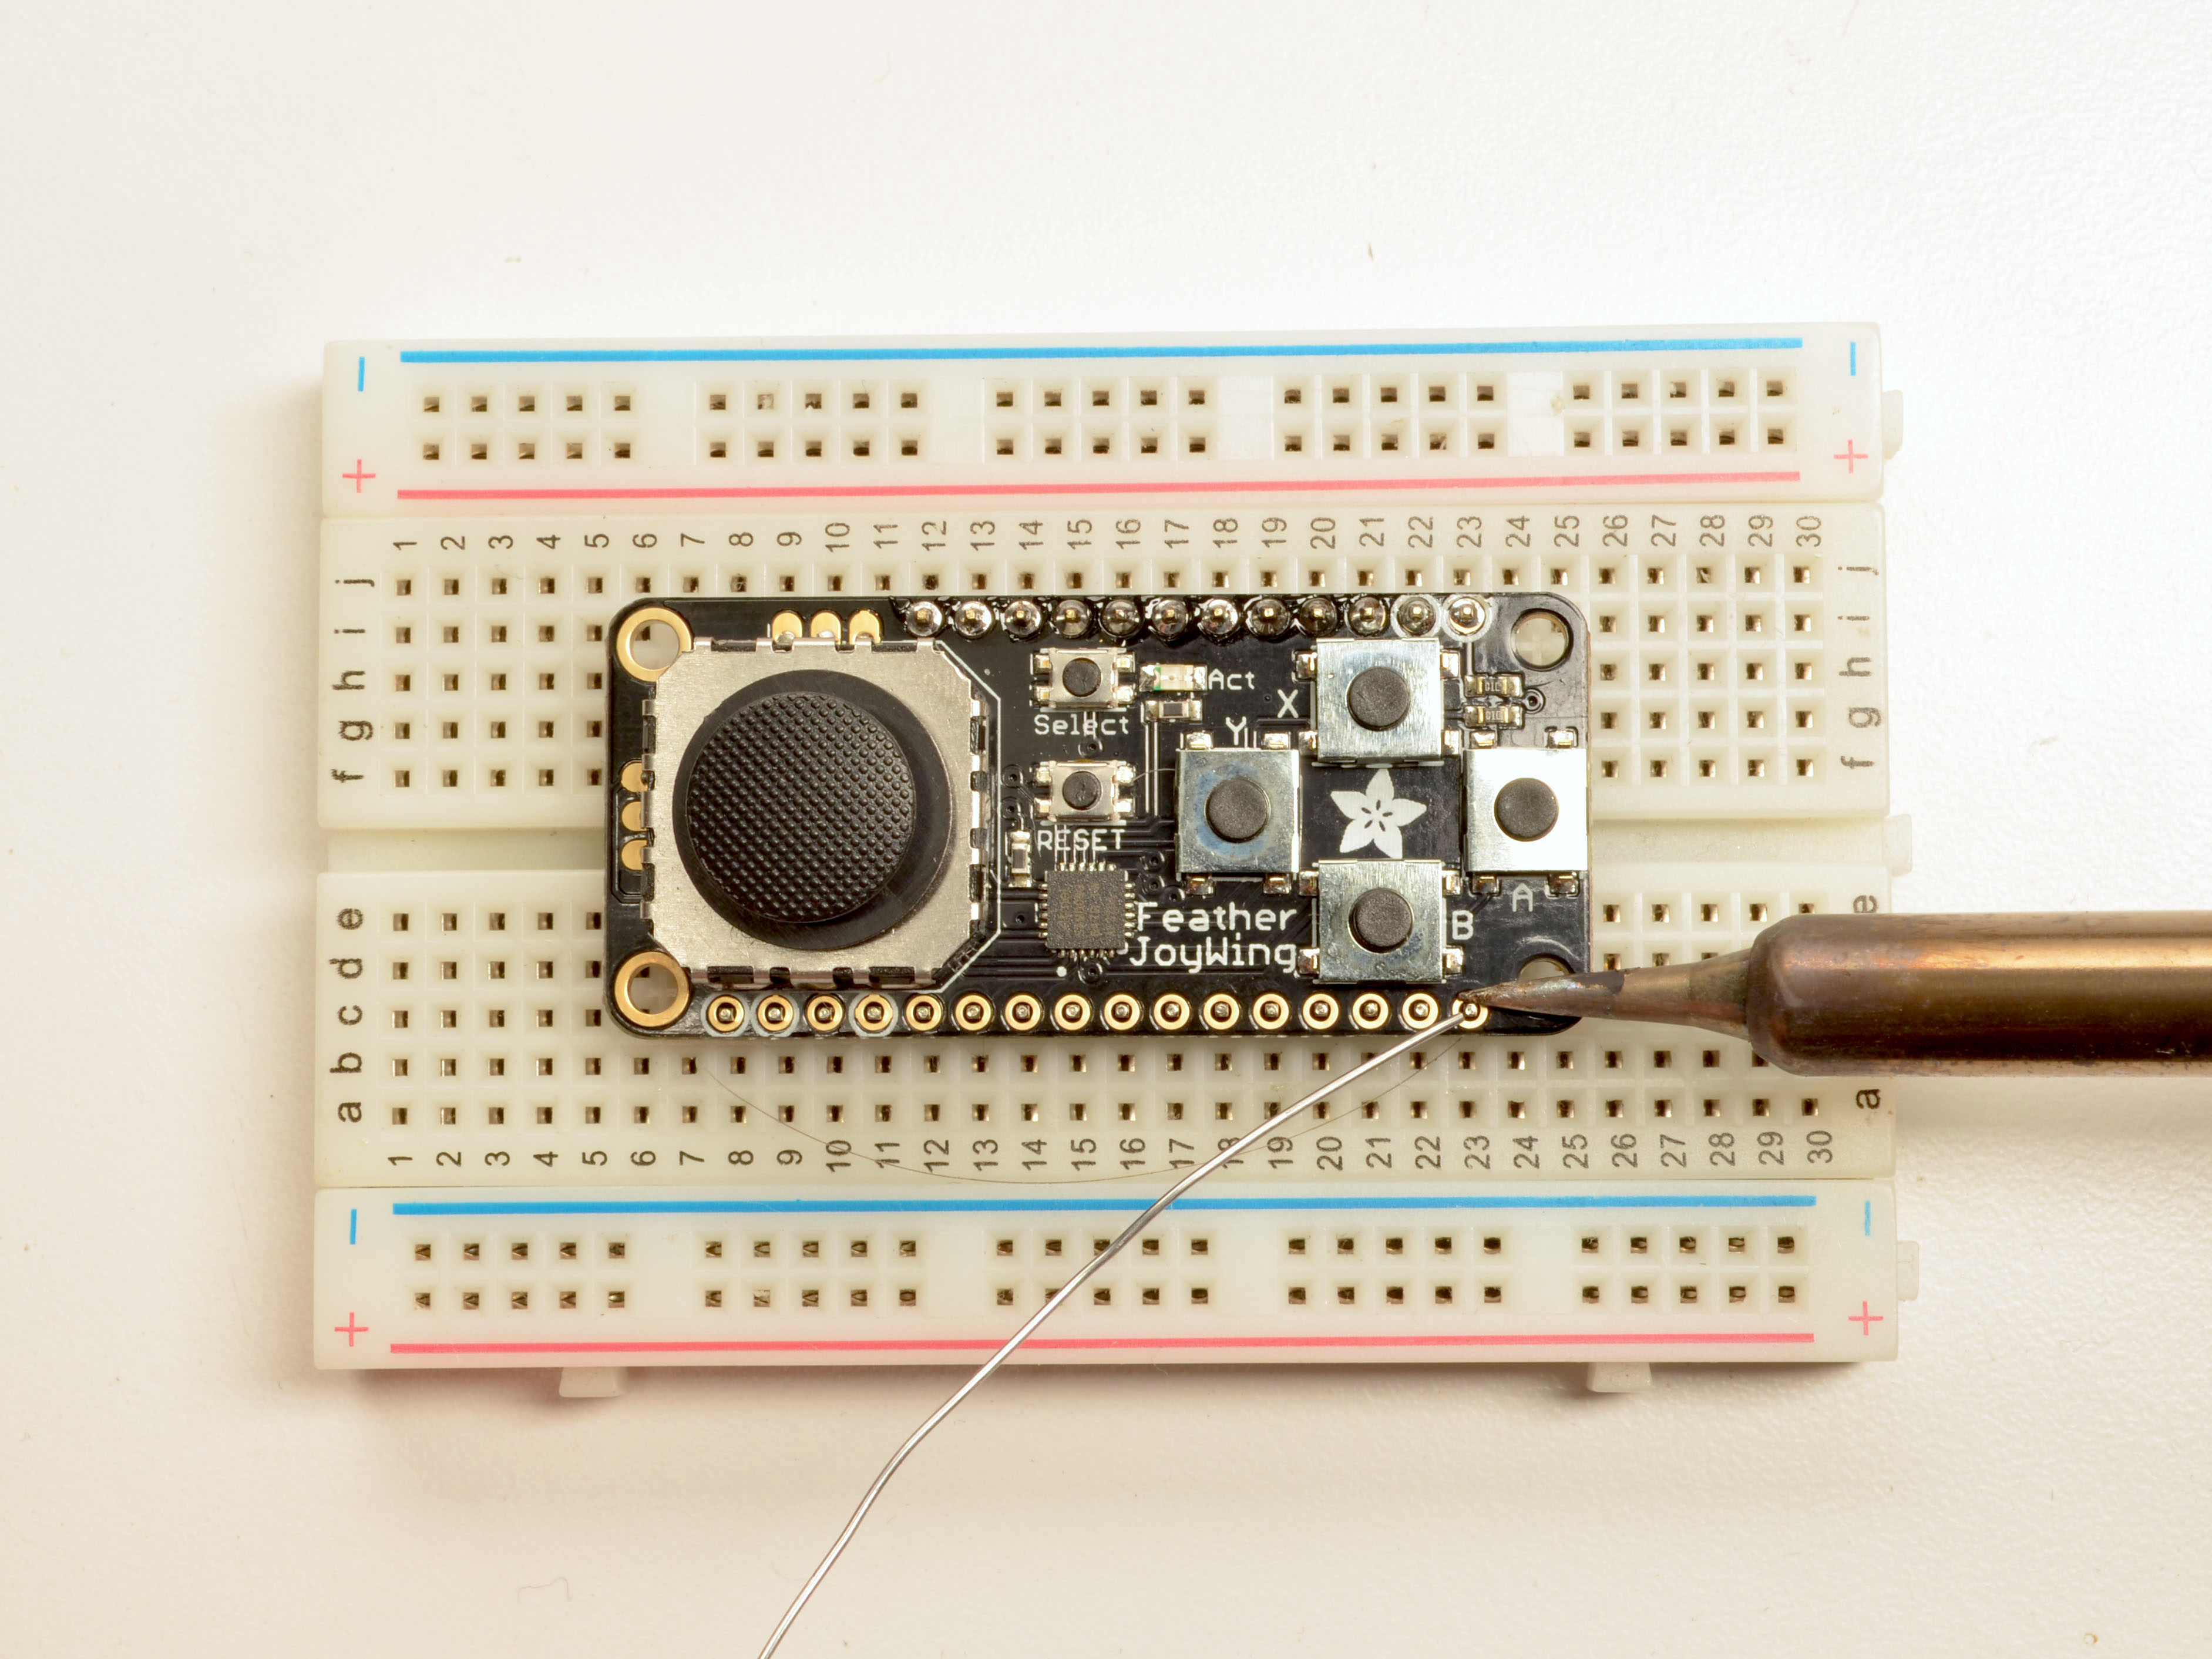 adafruit_products_DSC_3990.jpg